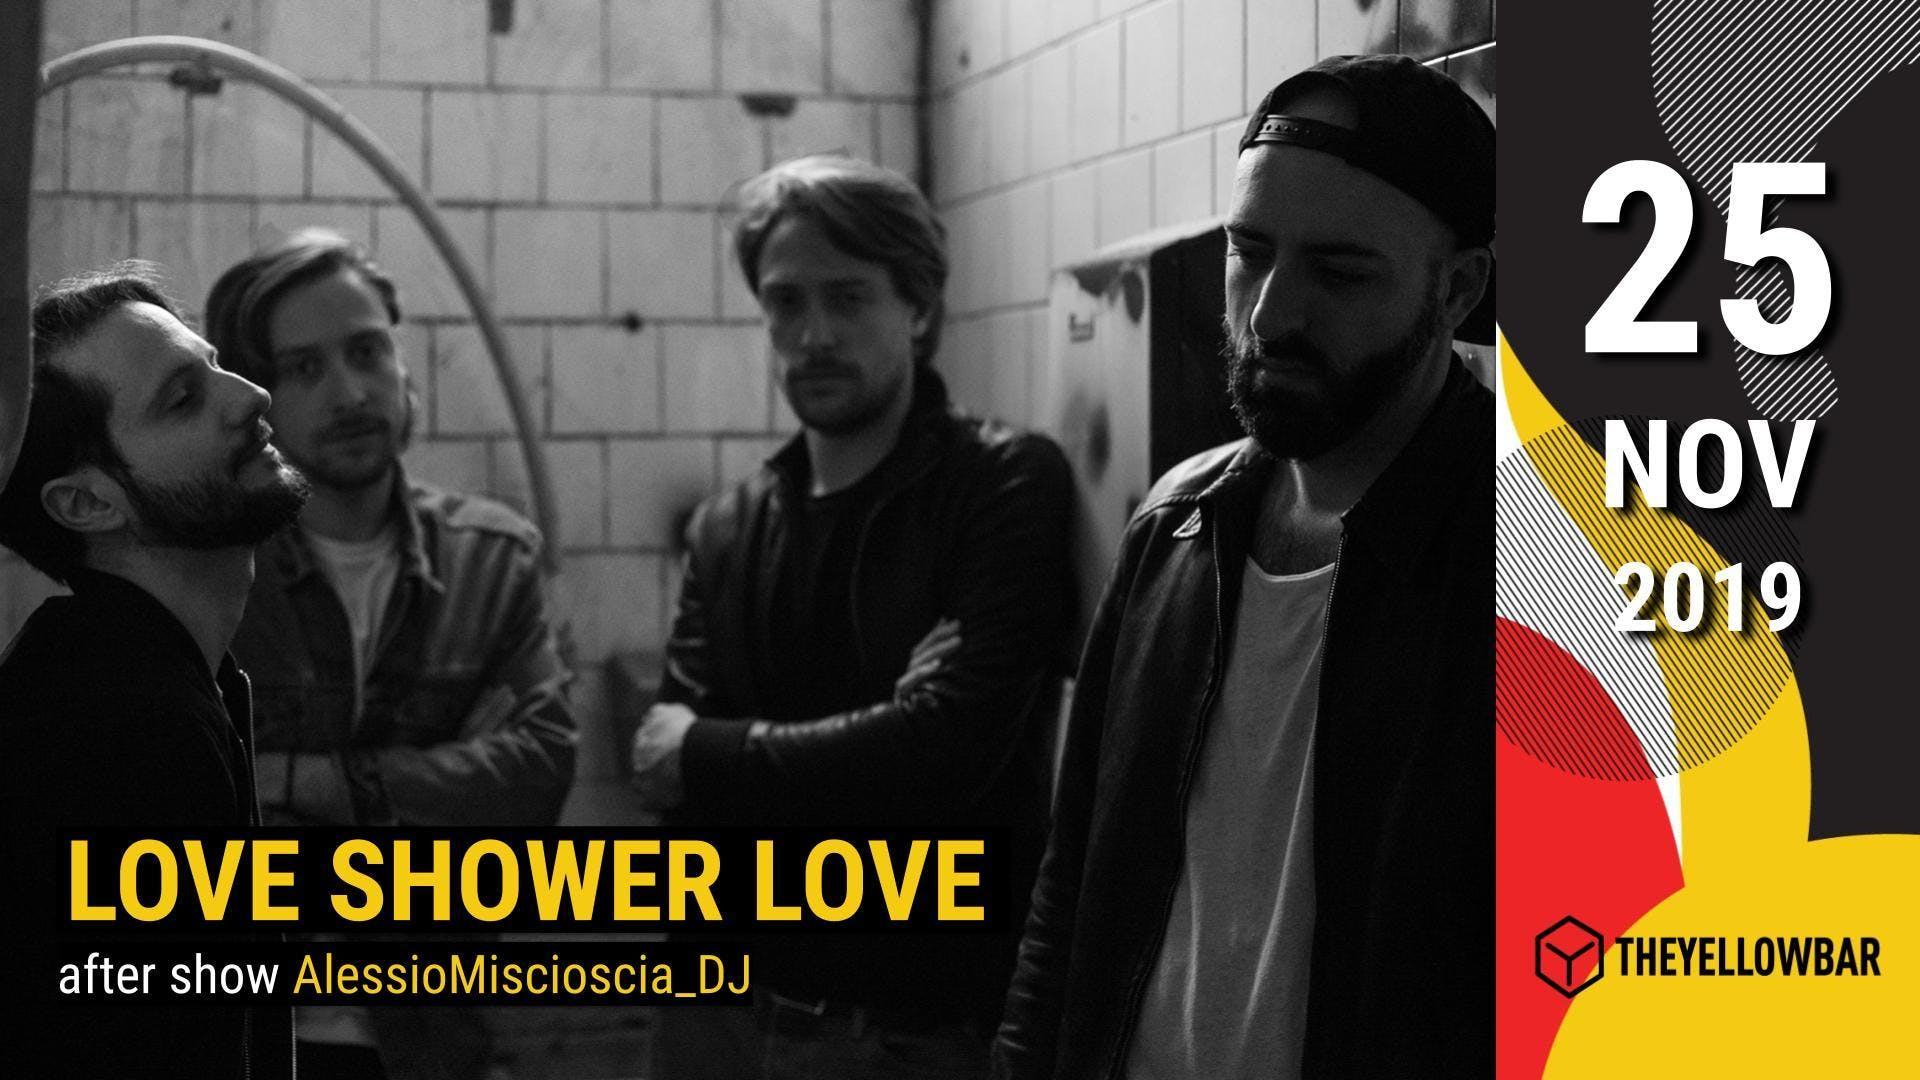 Love Shower Love - The Yellow Bar